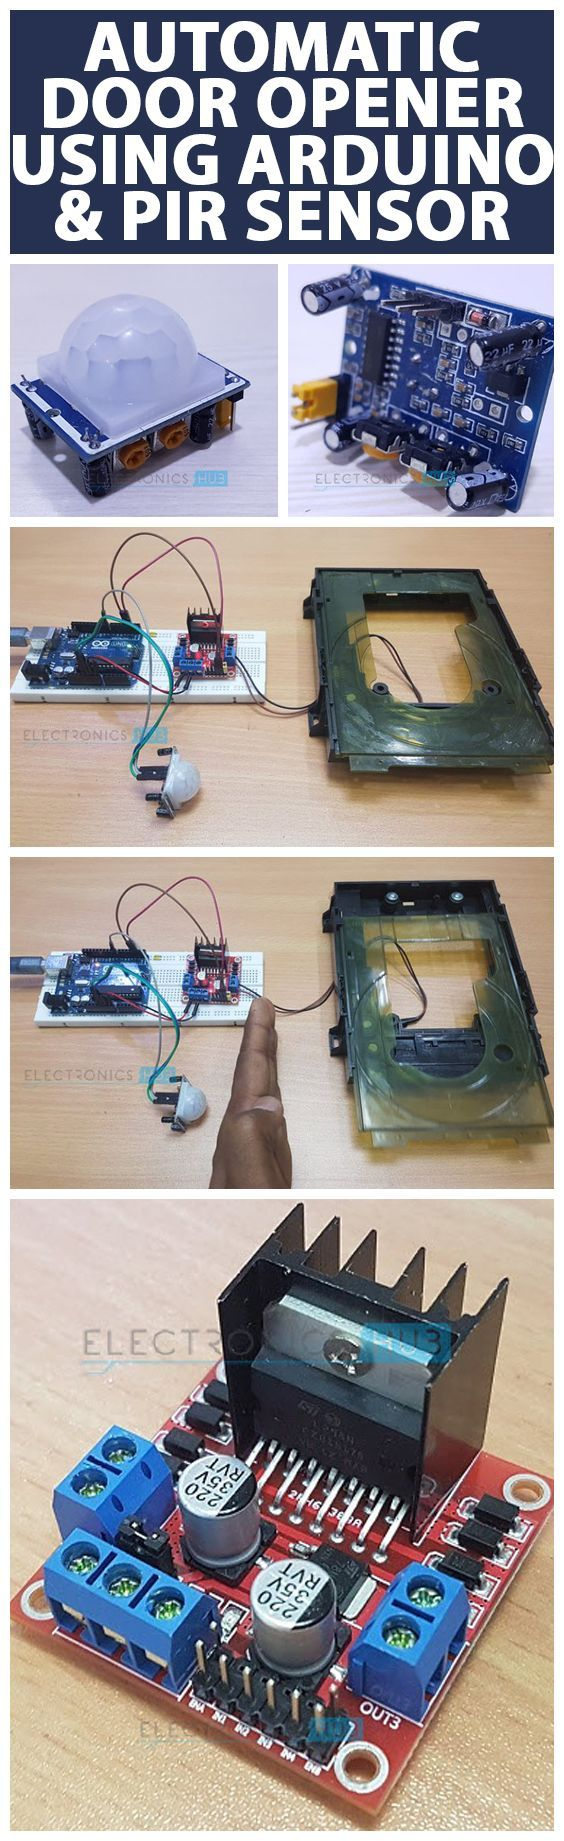 Automatic Door Opener System Using Arduino And Pir Sensor Microcontroller Based Diy Project For Power Saving An Is A Simple On Which Automatically Opens Closes The By Detecting Person Or